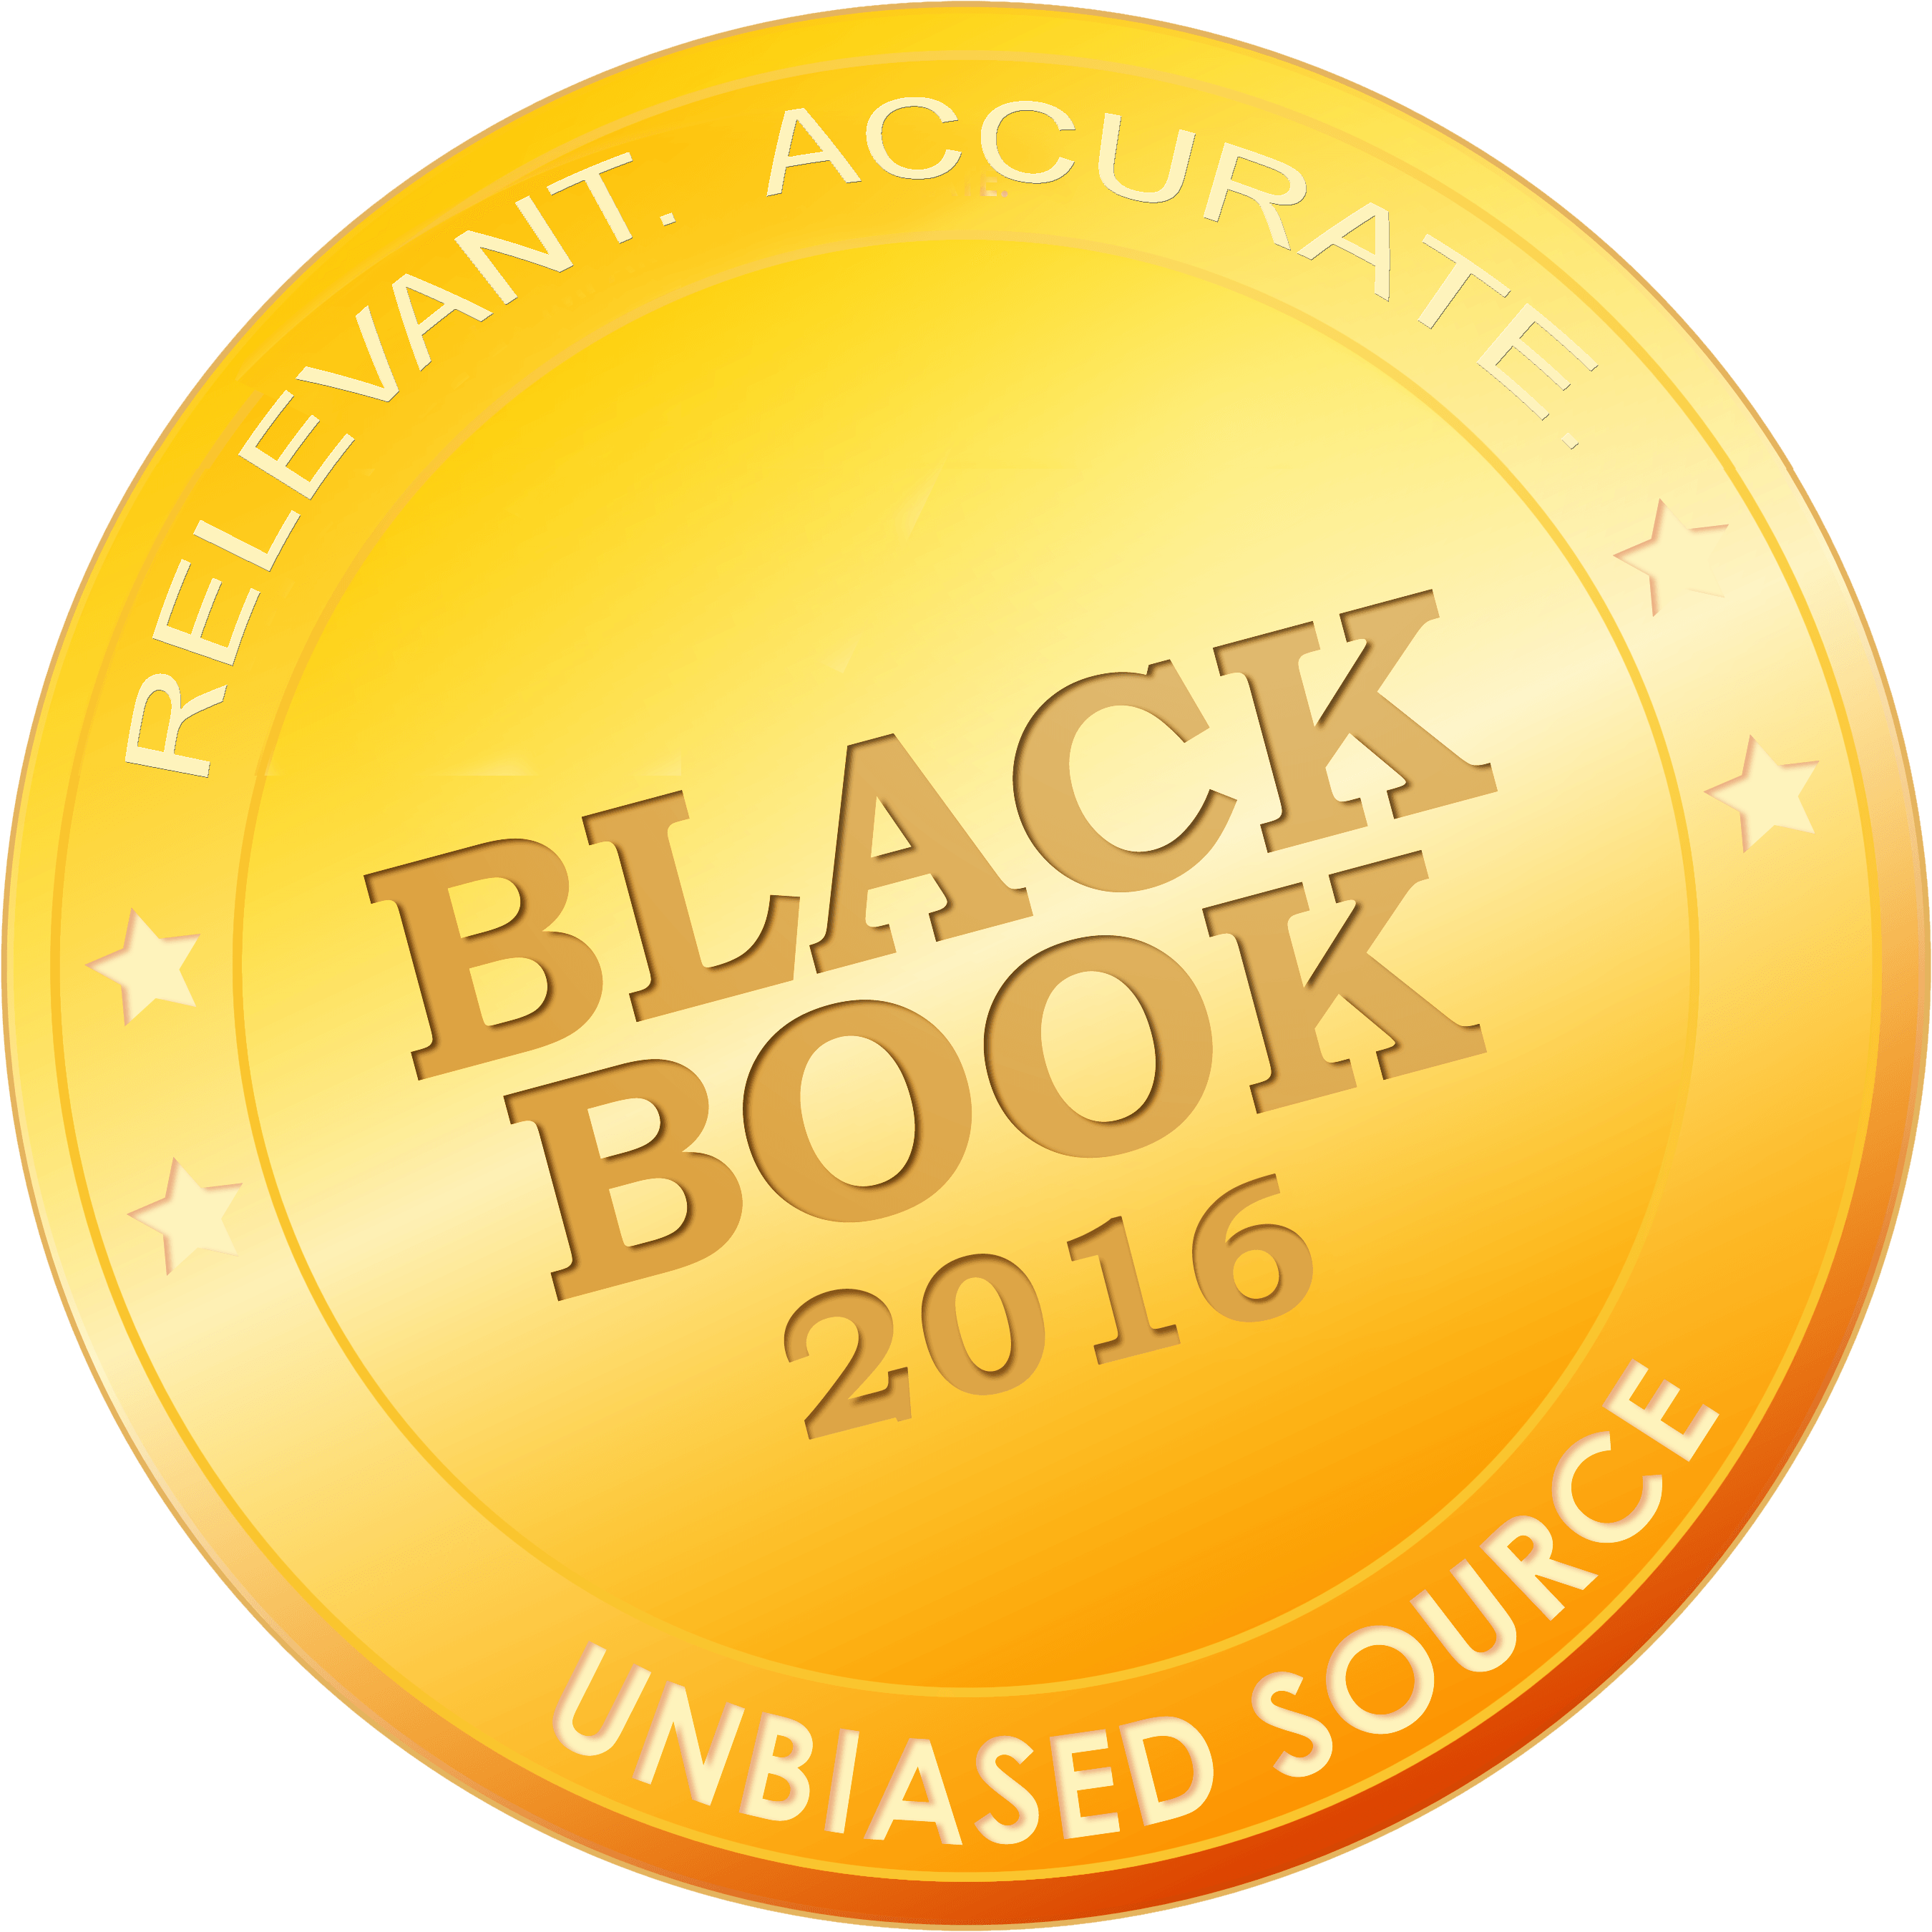 2016 Black Book Hospital End-to-End Clinical Documentation Improvement, Top 20 Ranked Vendors